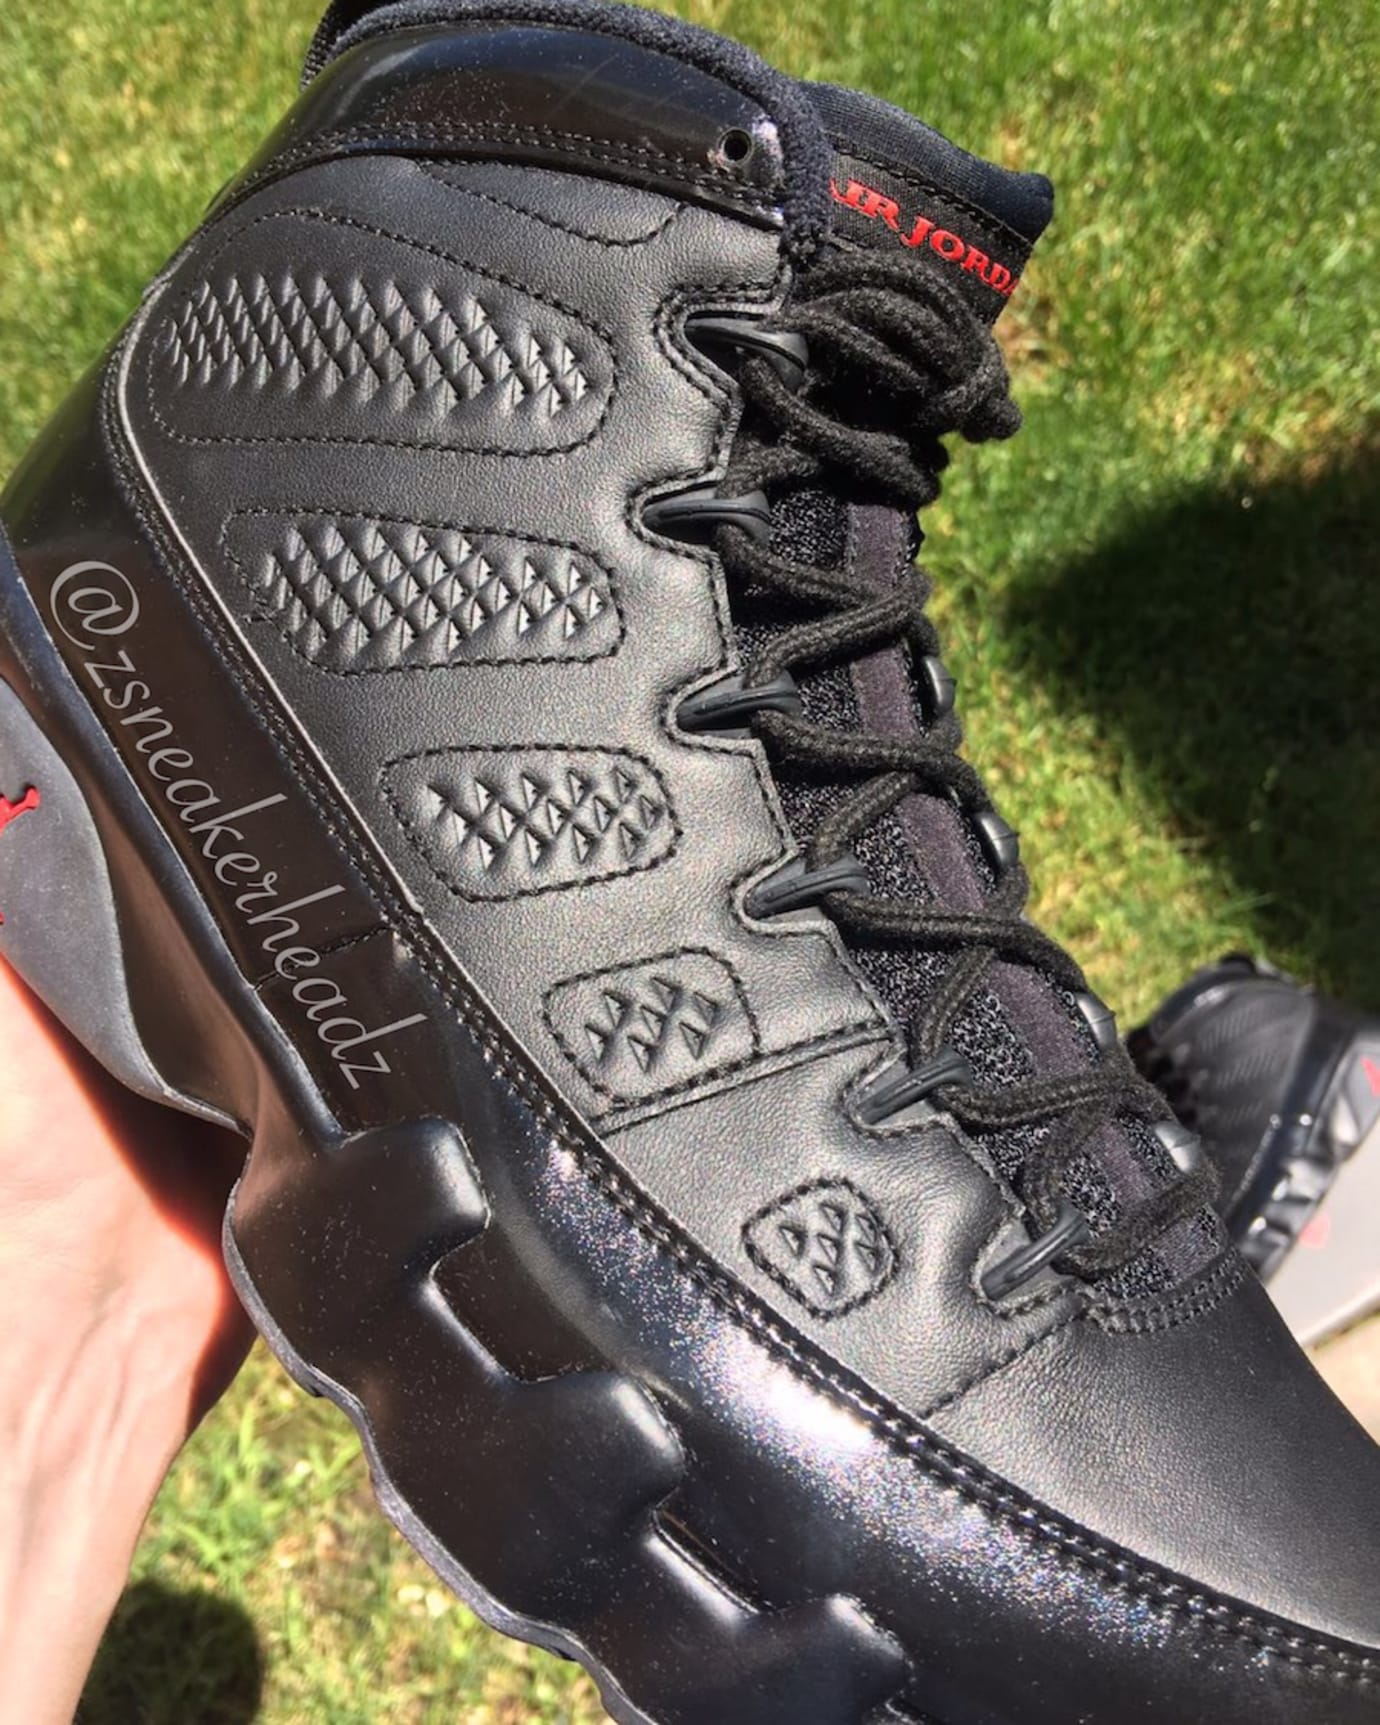 Air Jordan 9 Black Anthracite Red 2018 Release Date 302370-014 Front